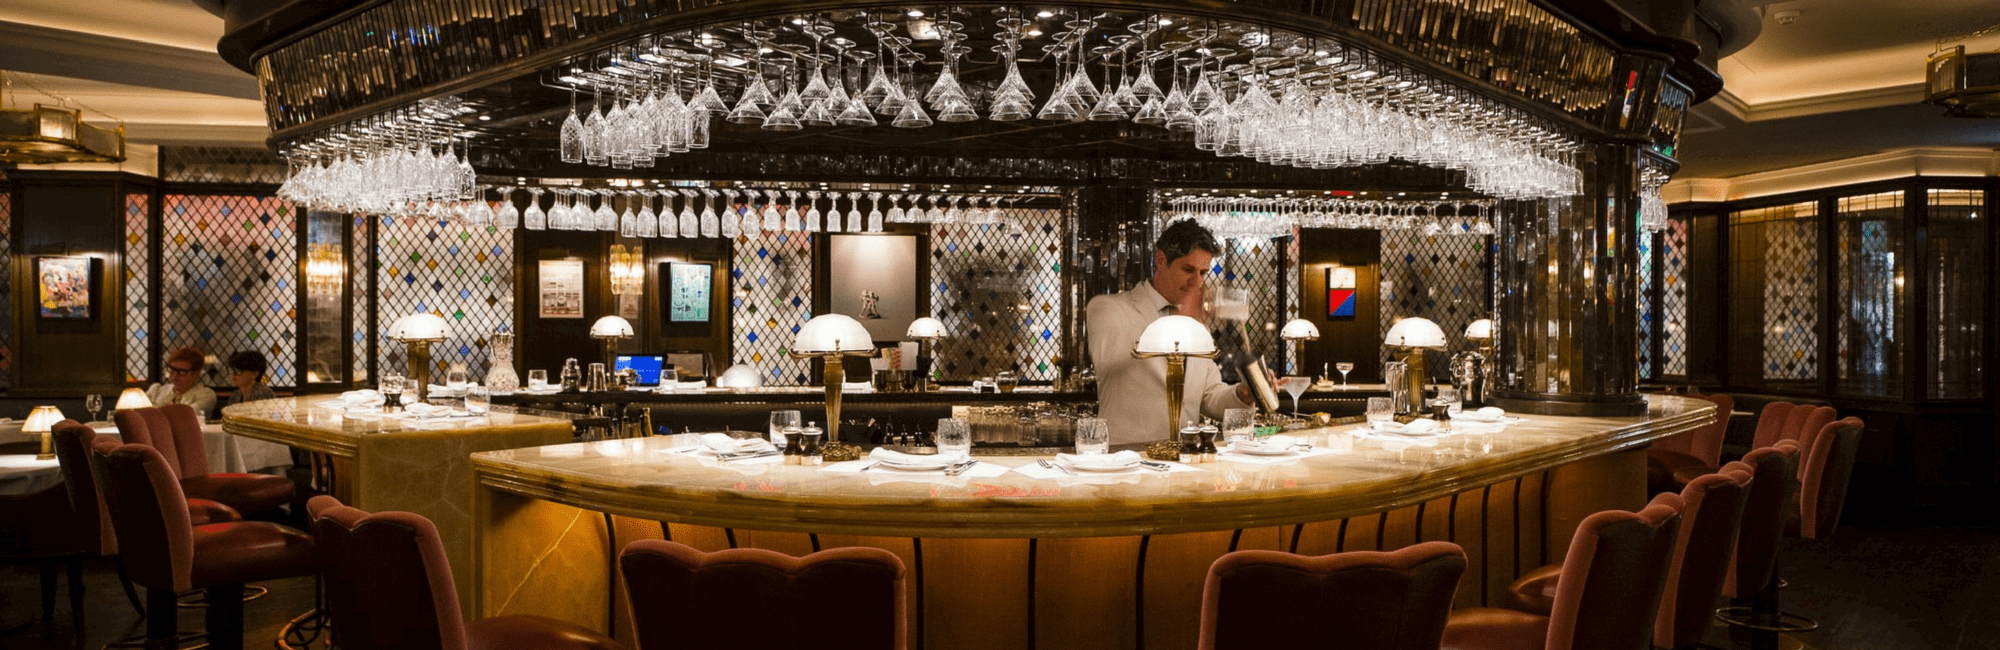 The Ivy welcomes customers without reservations at the central dining bar